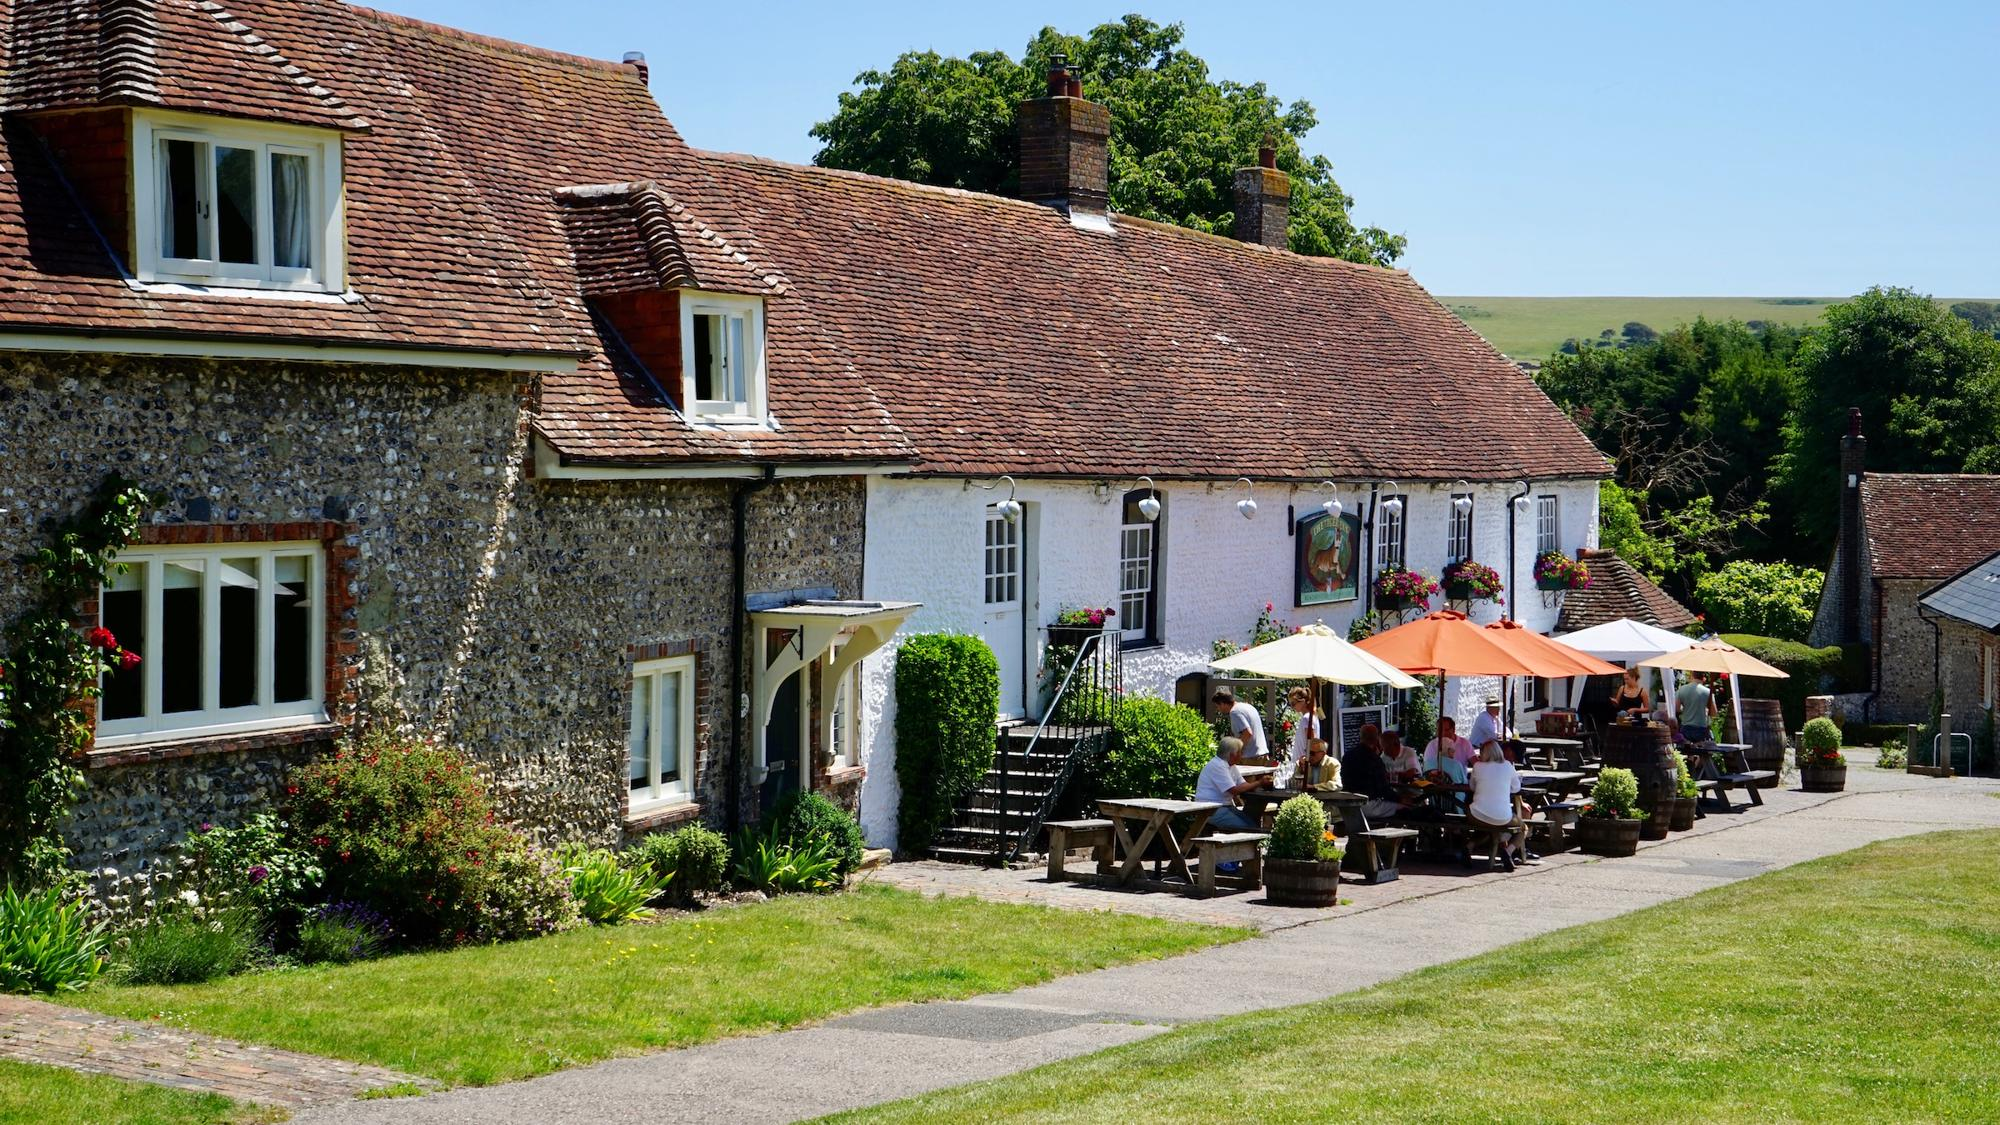 Pubs with camping - best pub campsites in the UK